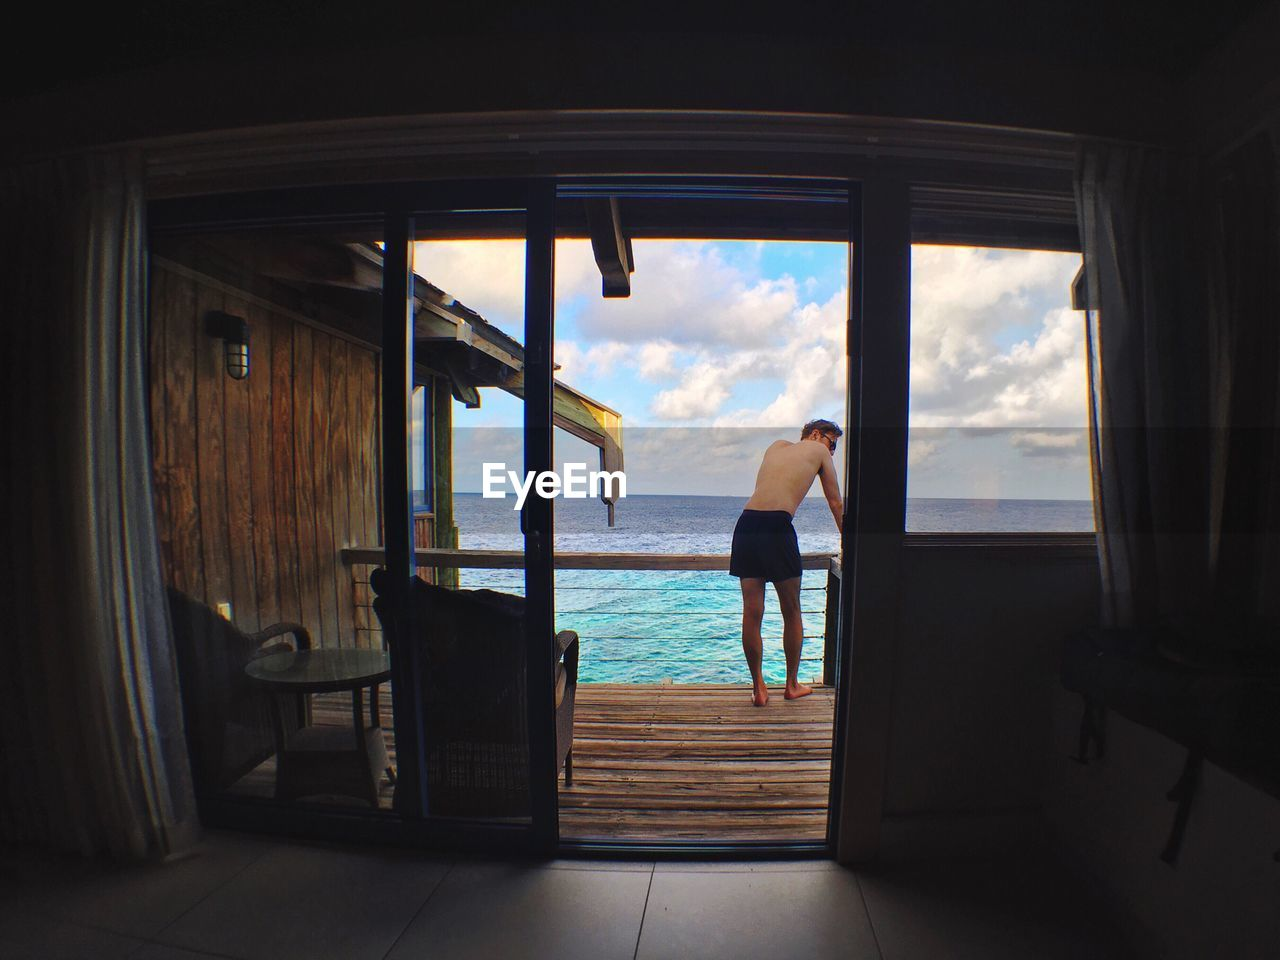 sea, water, sky, full length, one person, window, looking at view, day, standing, horizon over water, leisure activity, chair, cloud - sky, real people, nature, vacations, wood - material, indoors, looking through window, scenics, nautical vessel, beauty in nature, luxury hotel, architecture, men, young adult, people